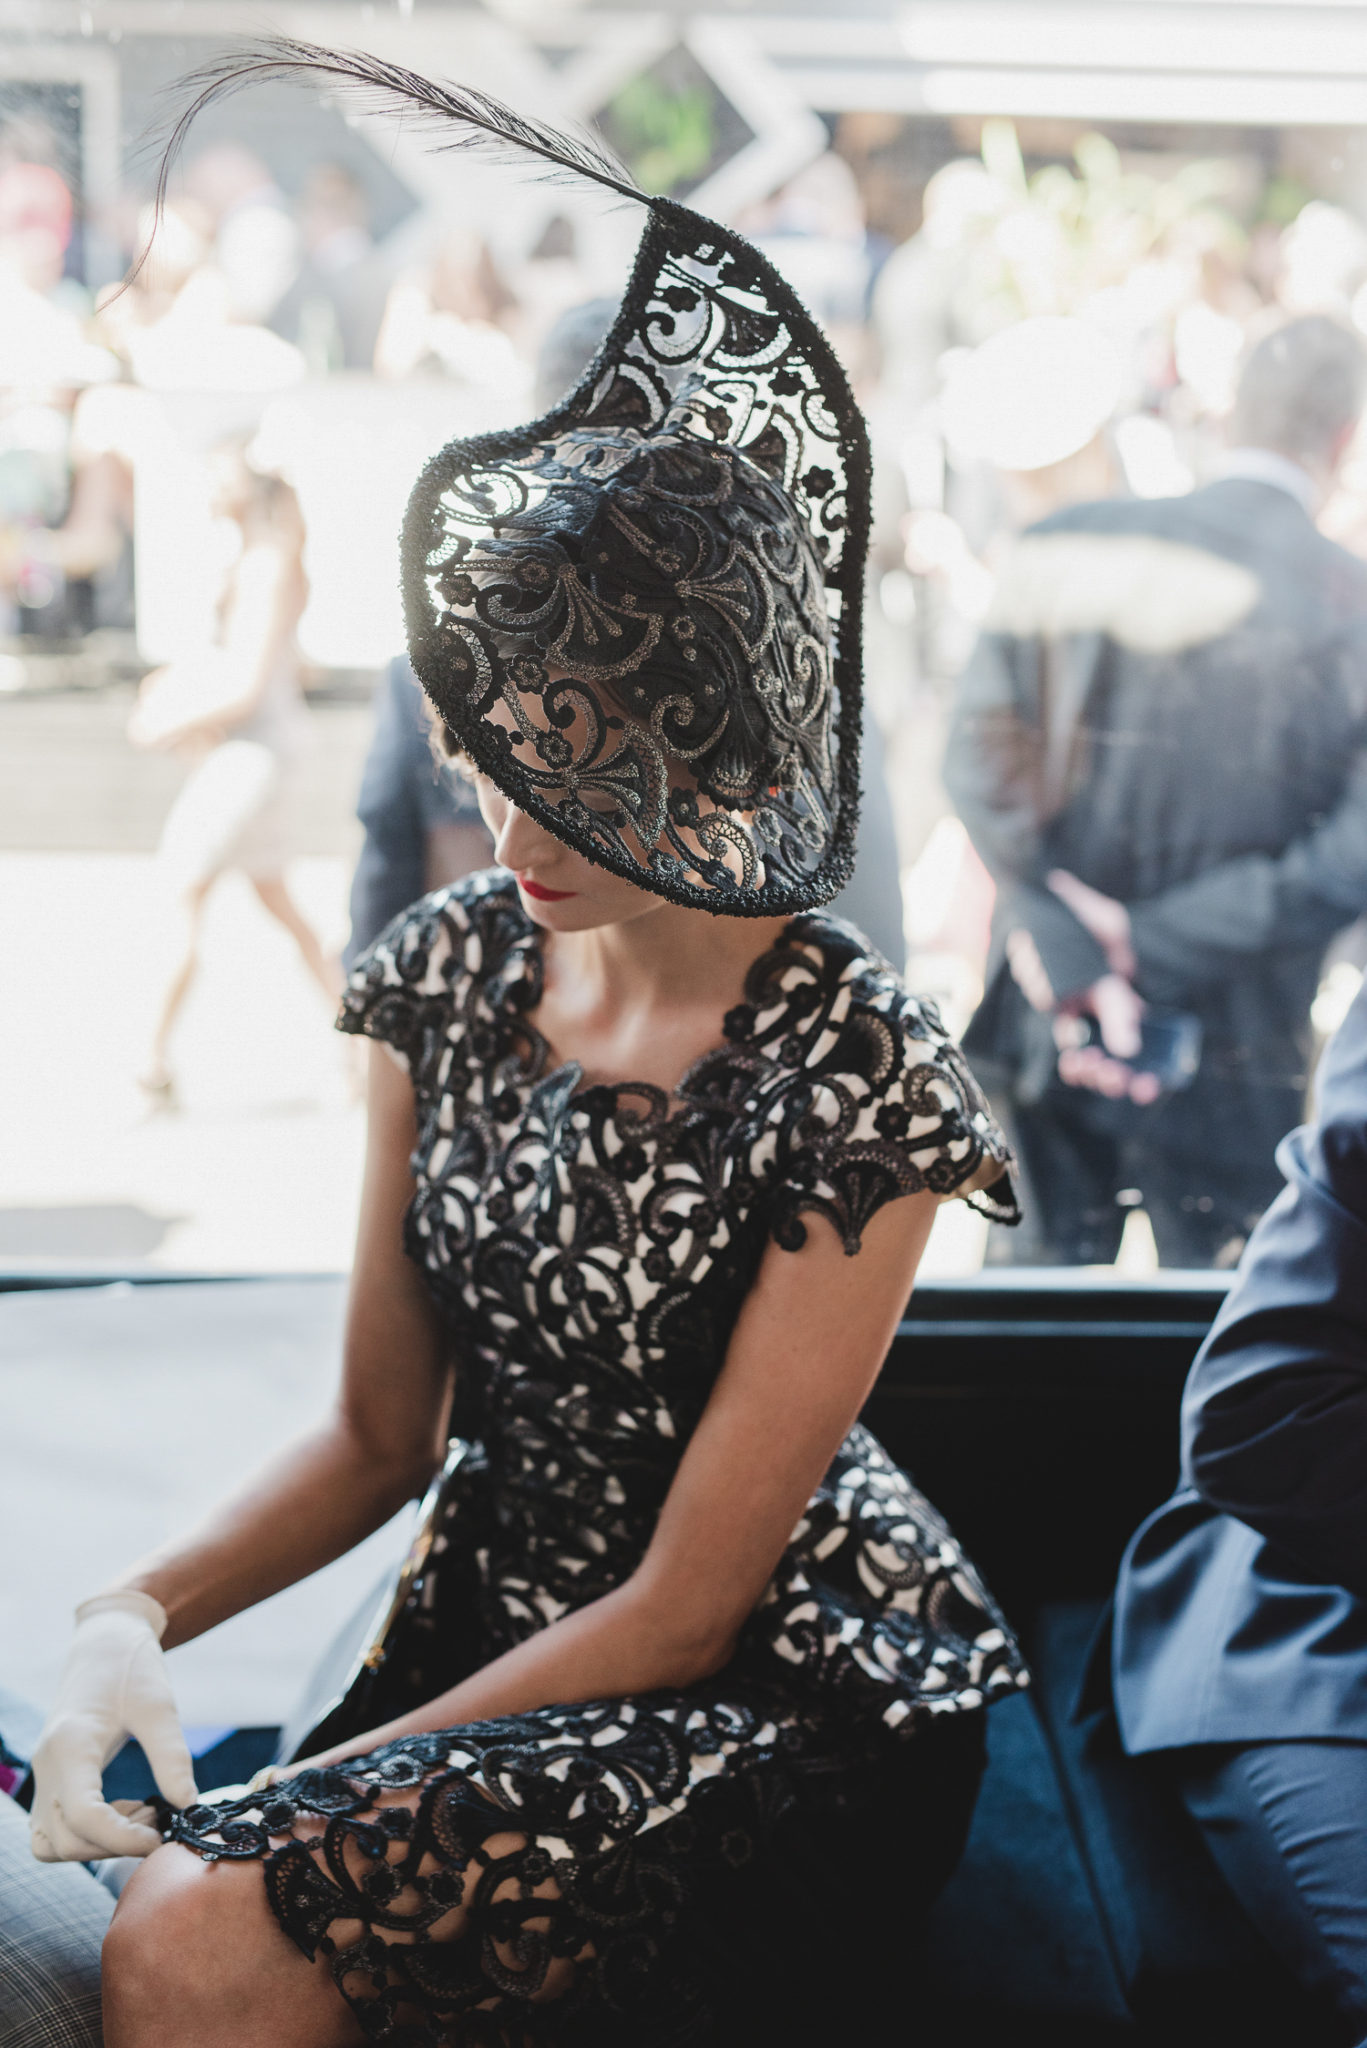 oaks-day-2016-spring-racing_205-edit